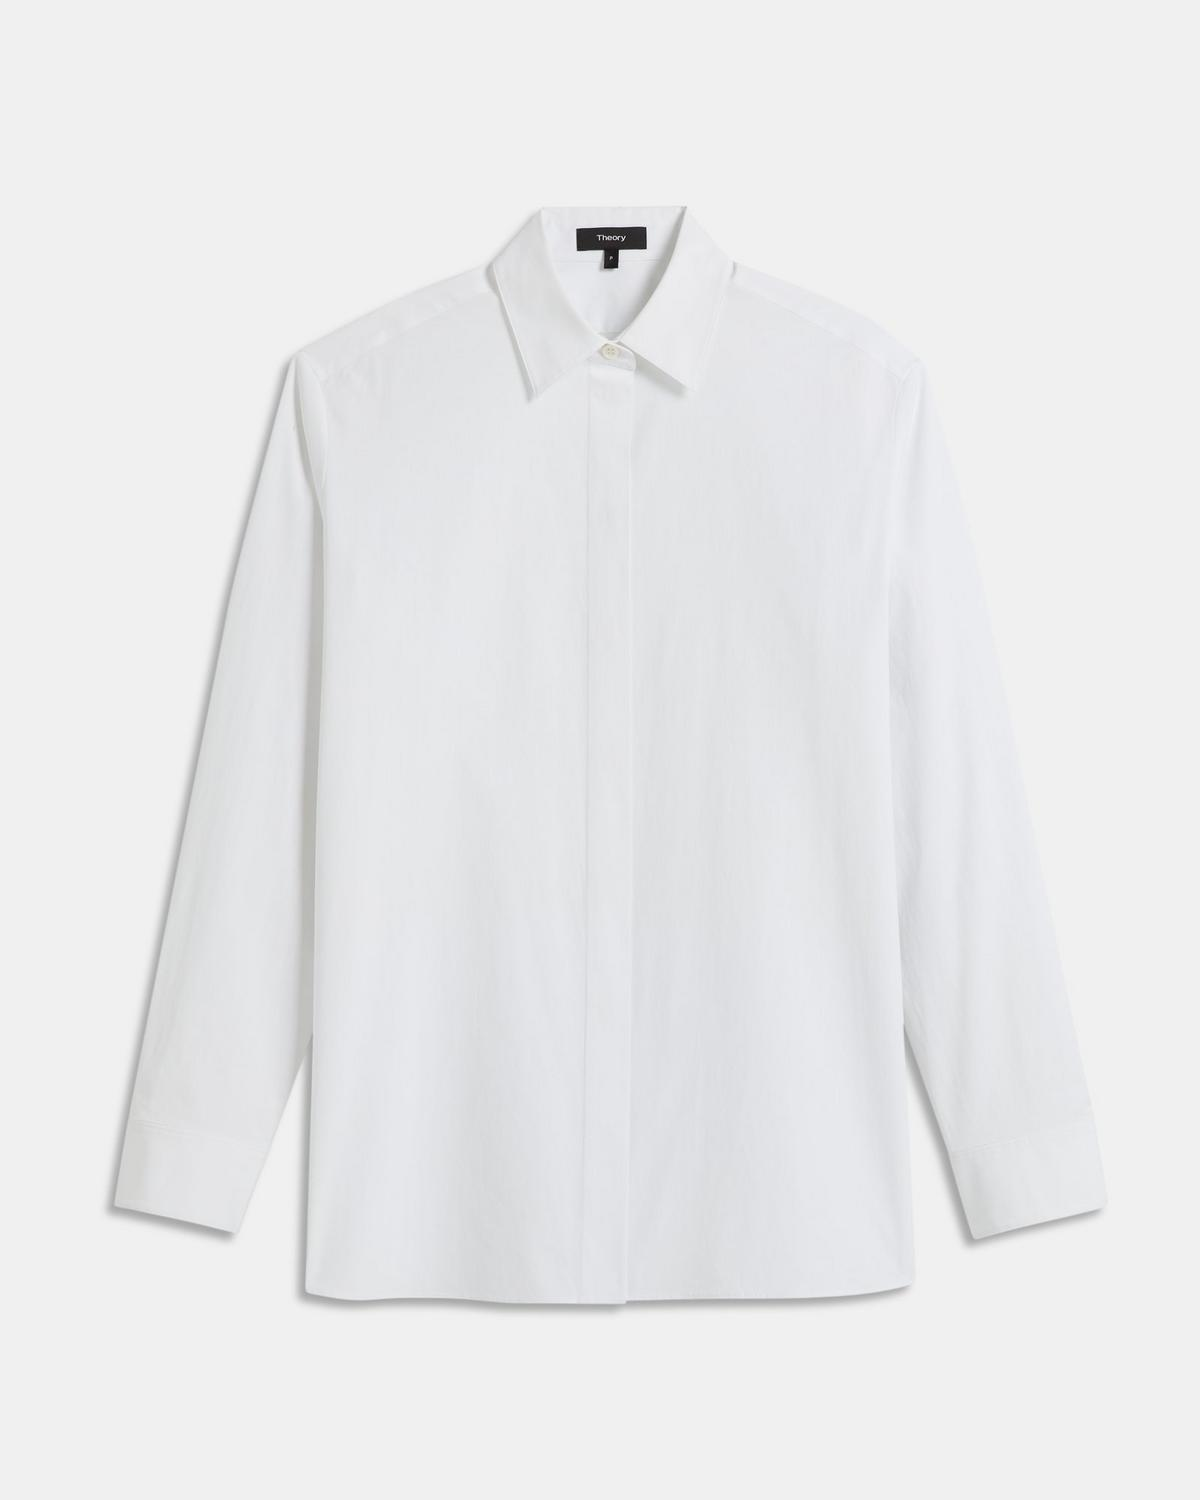 Menswear Shirt in Good Cotton